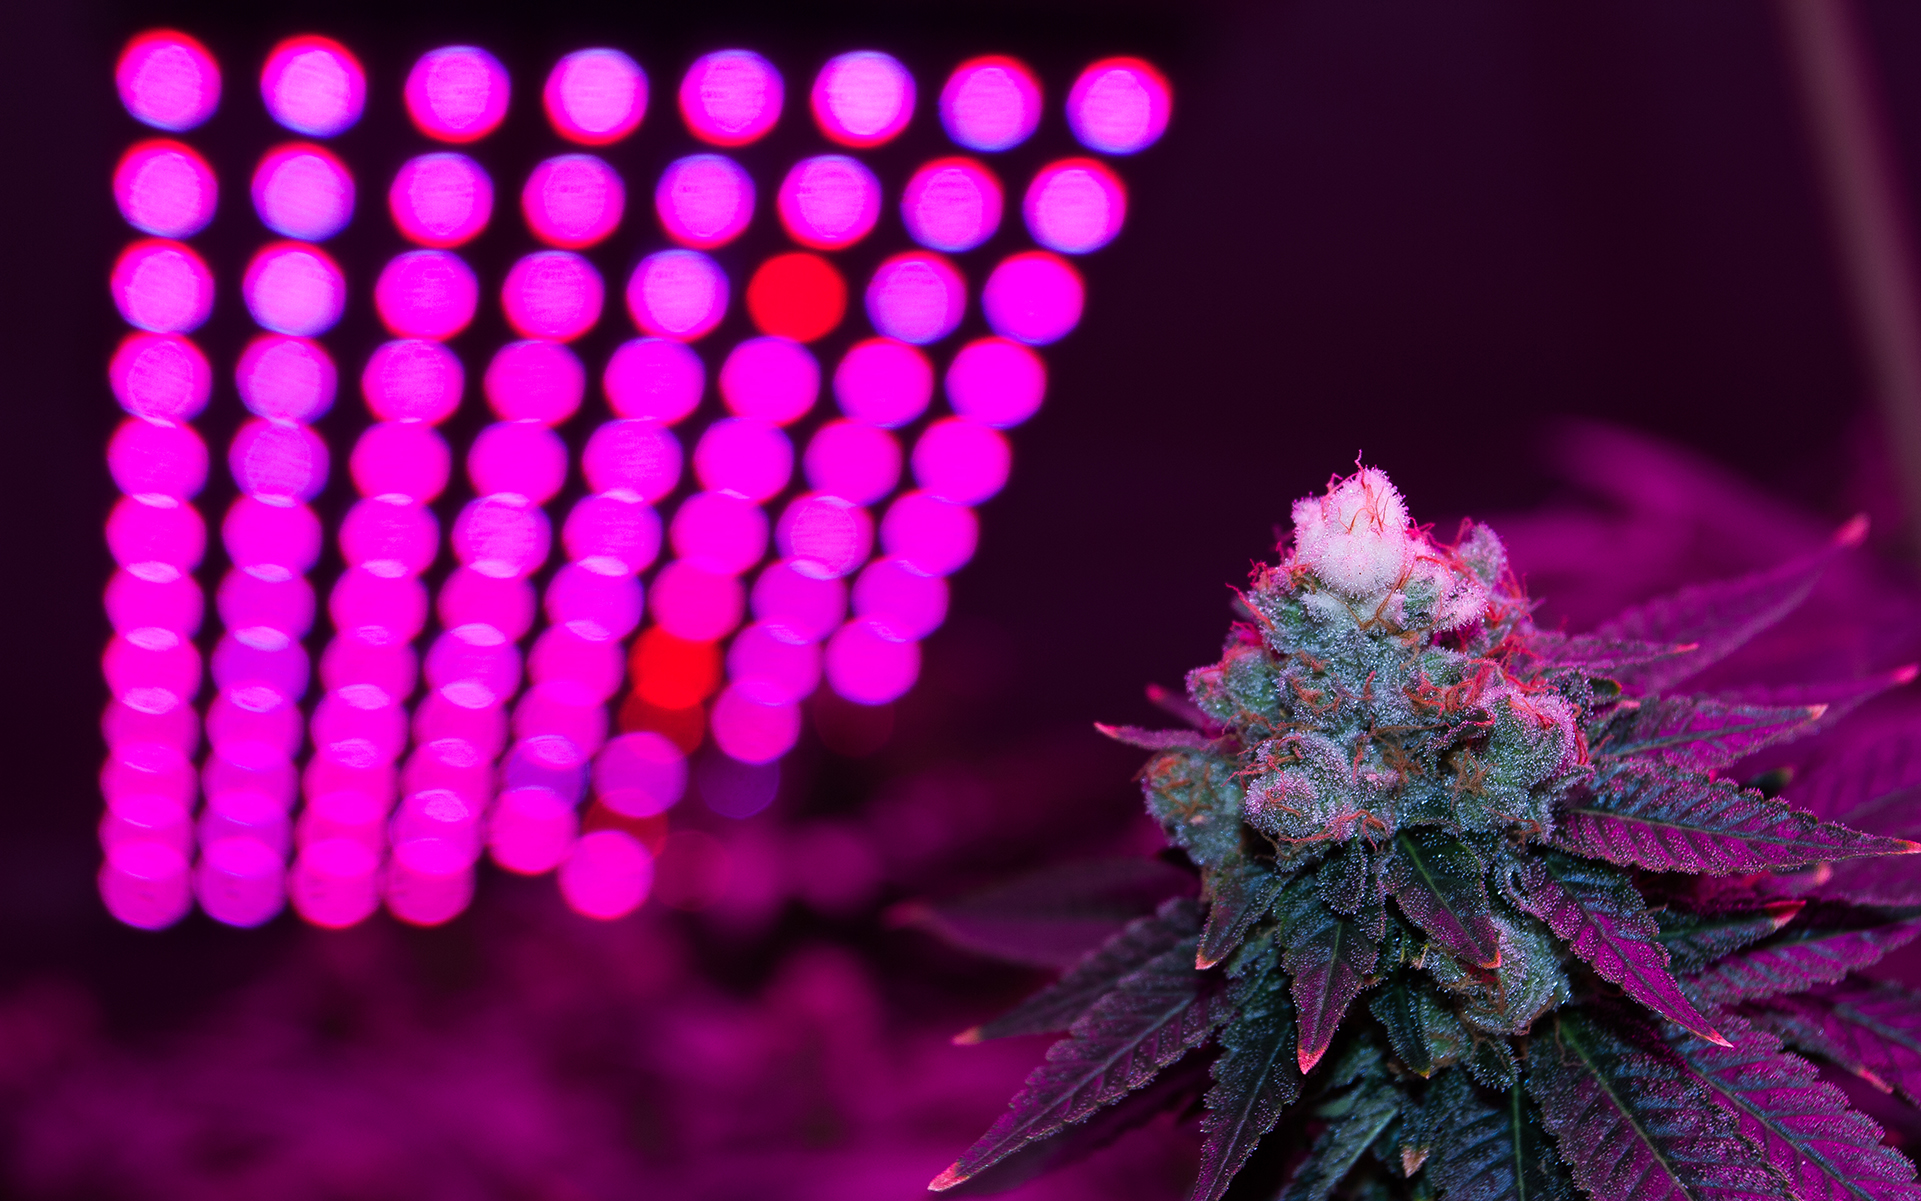 White-tipped cannabis buds in an LED lit grow room